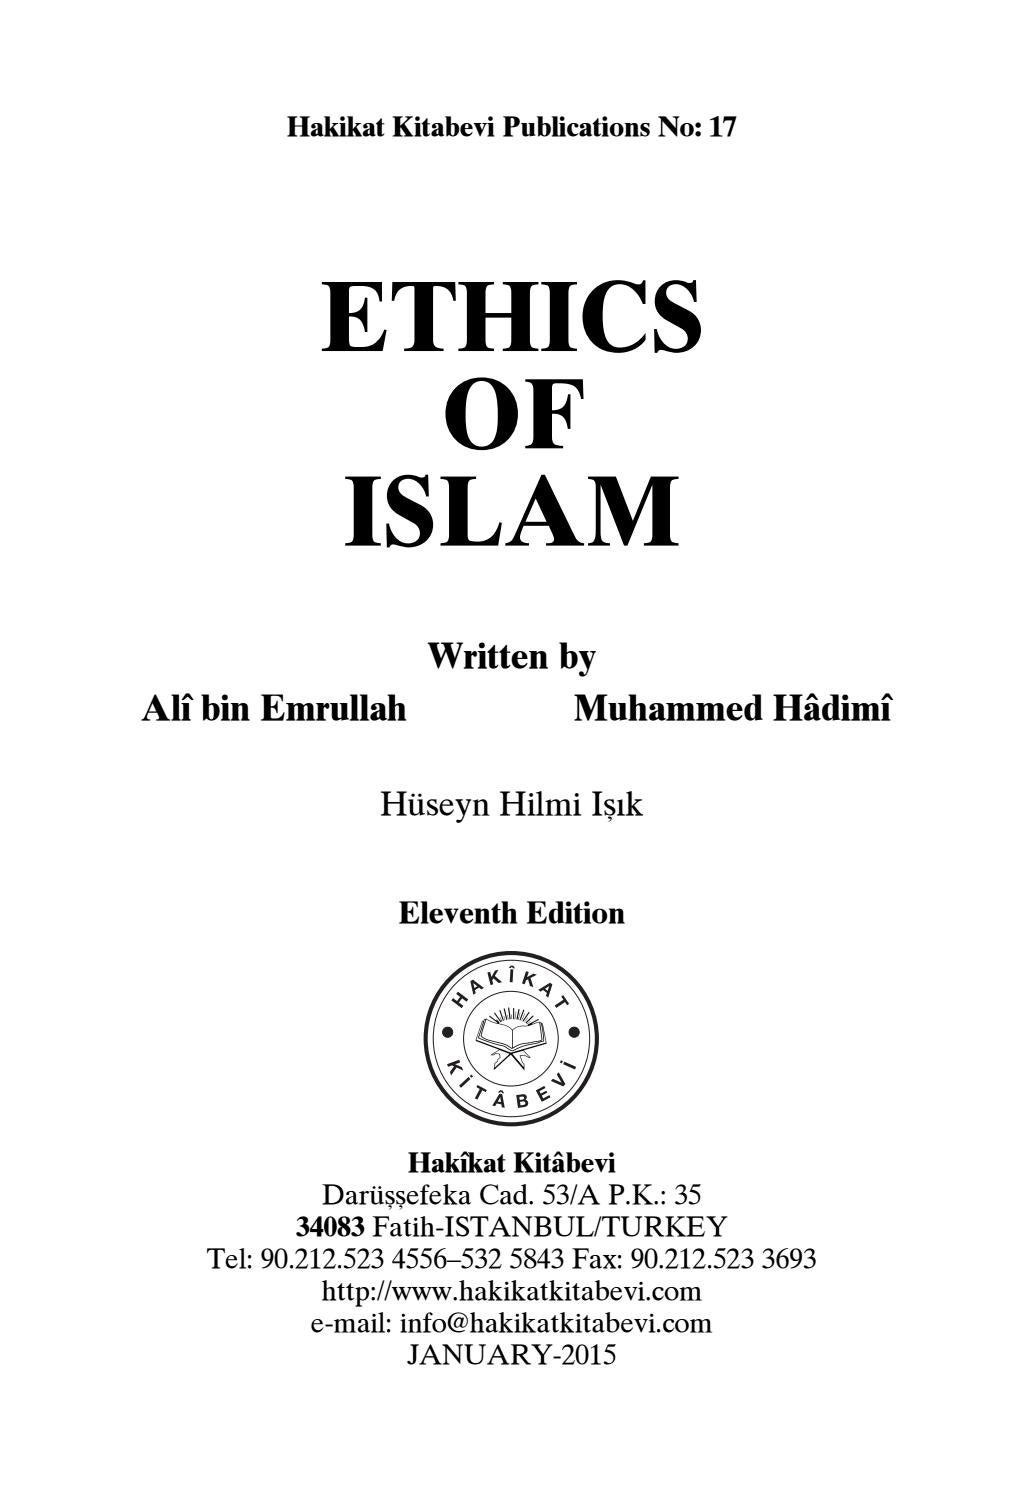 Ethics Of Islam By Akinci Issuu Stambul Qur An Mini 30 Juz